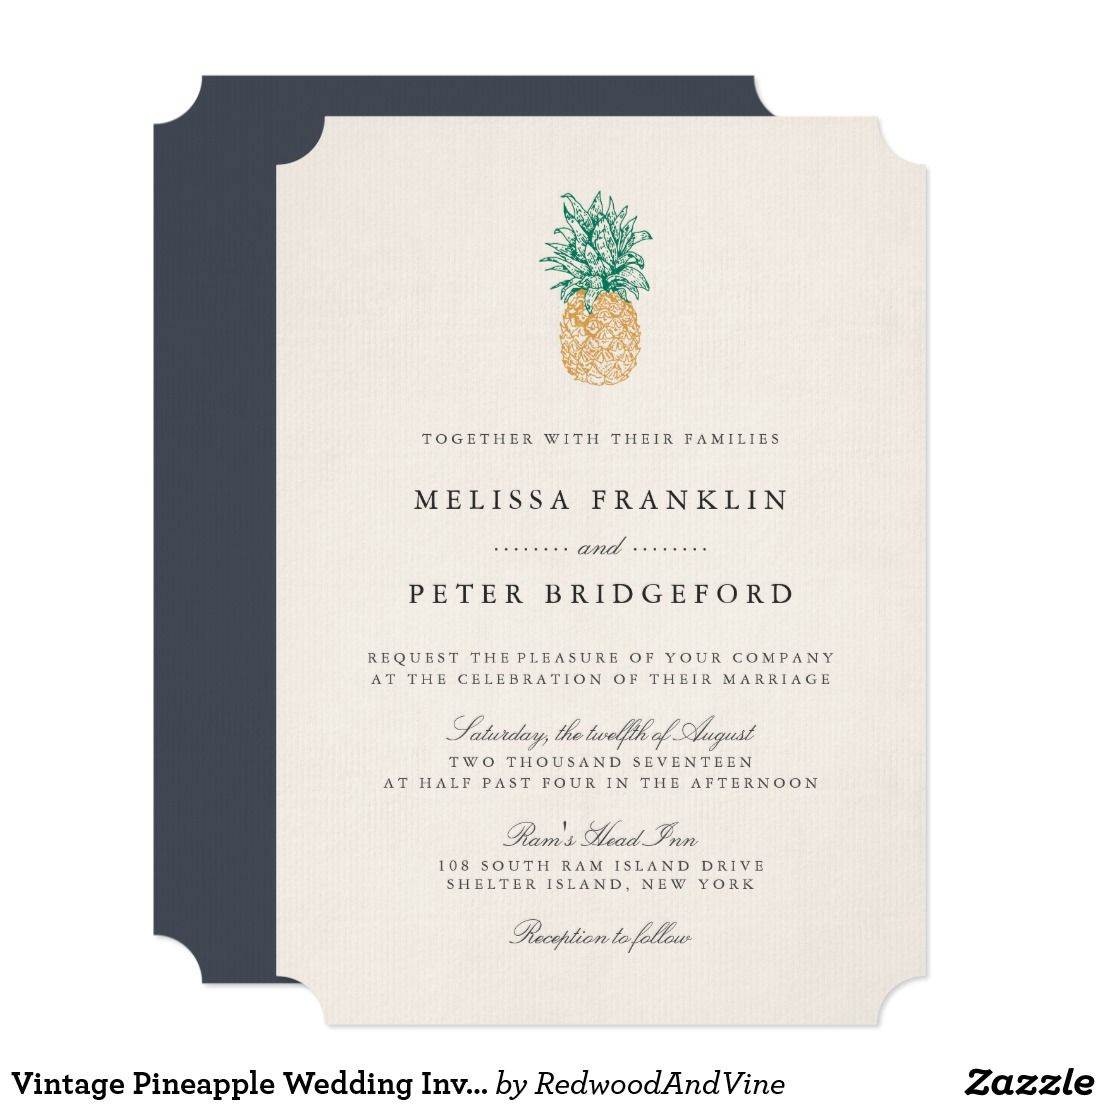 Vintage pineapple wedding invitation pinterest southern weddings vintage pineapple wedding invitation understated and elegant our vintage pineapple wedding invitation features a pineapple illustration at the top with stopboris Gallery